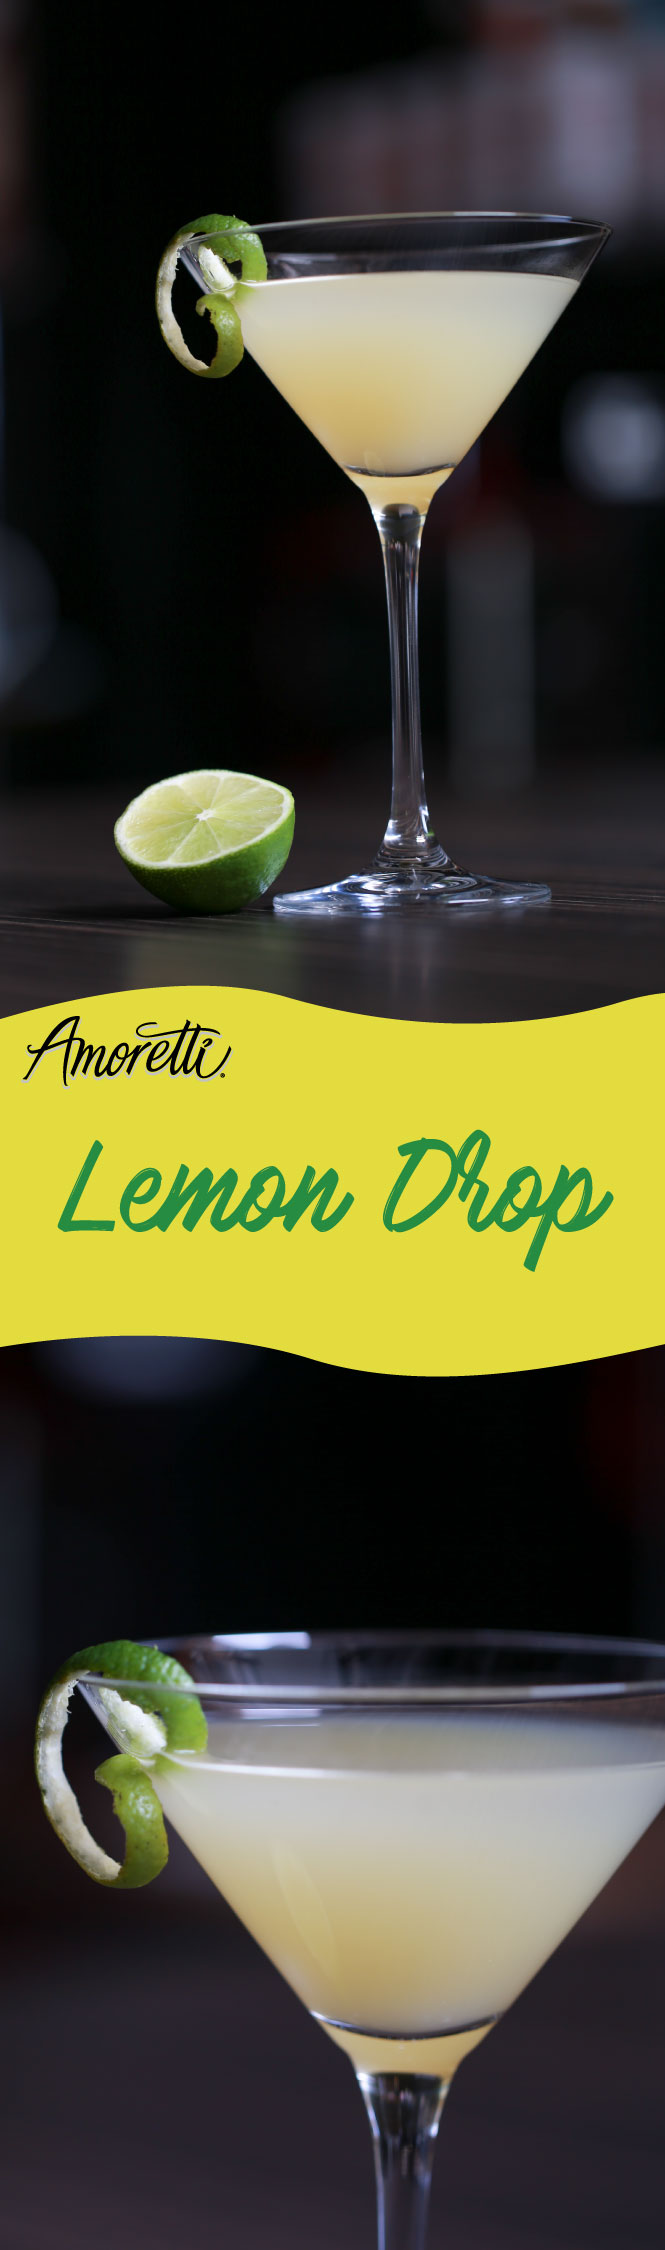 Invite your friends over and impress them with this fancy drink!